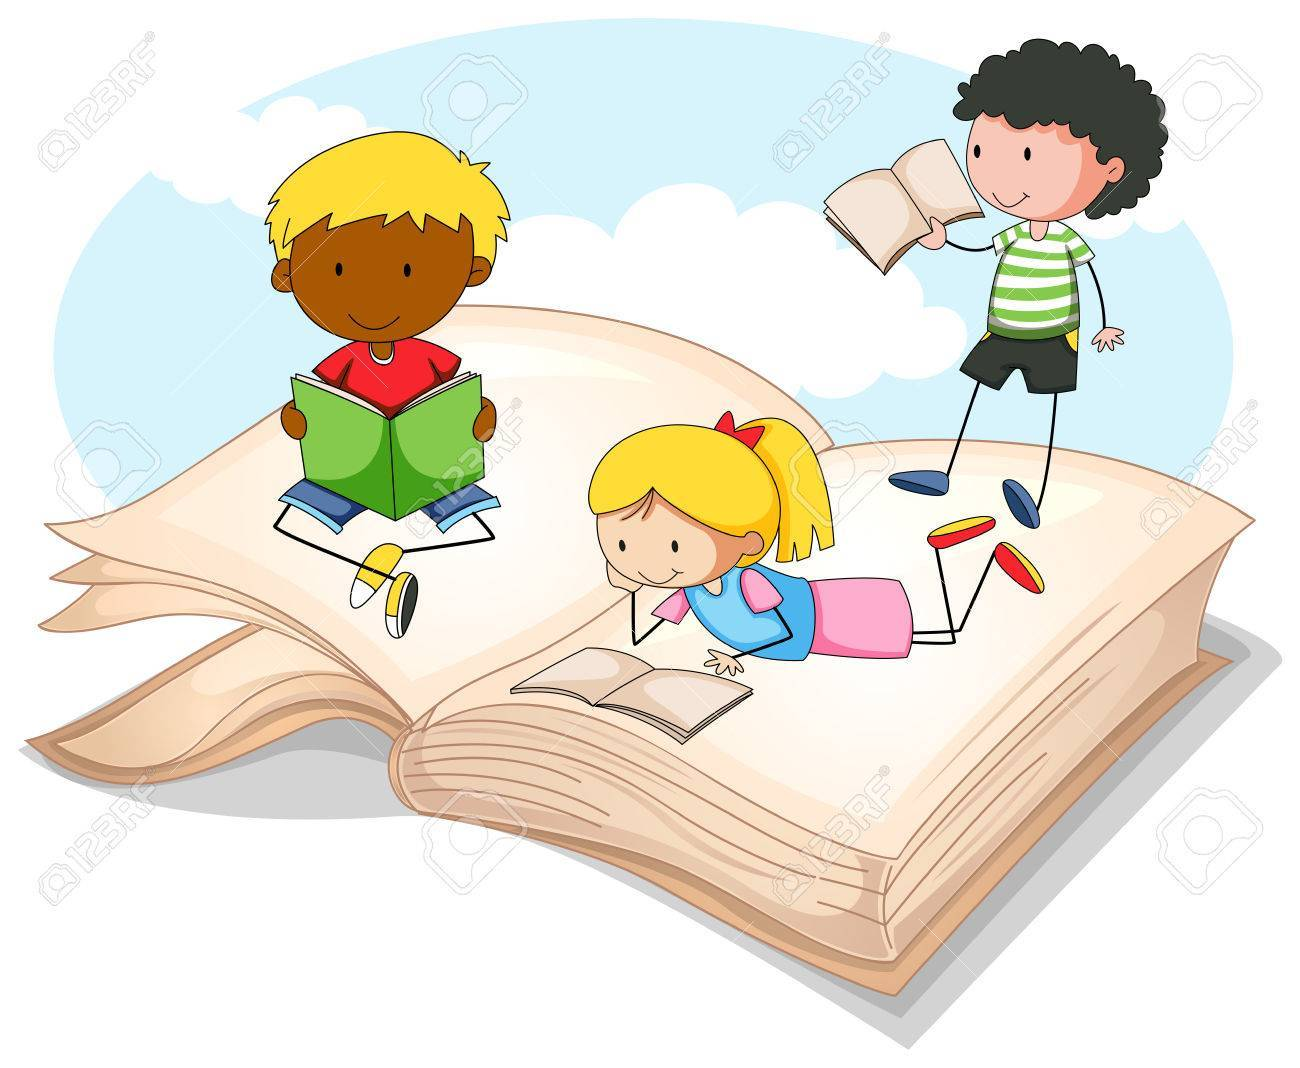 Three kids reading storybook » Clipart Portal.